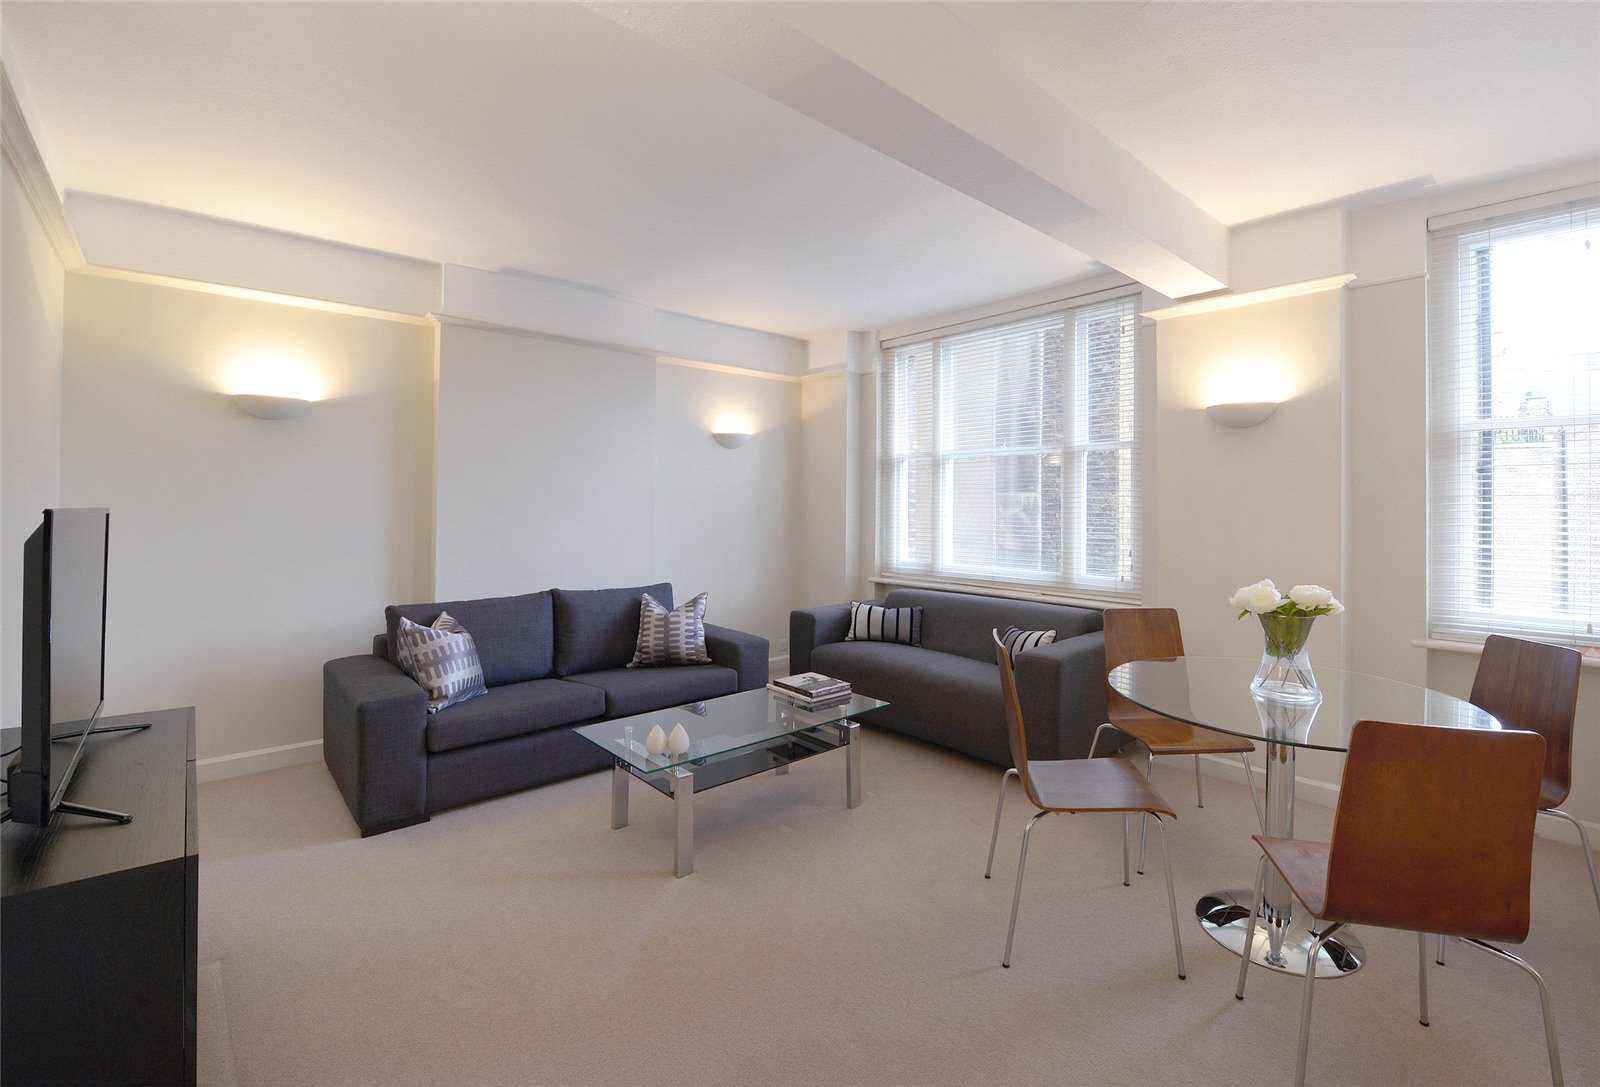 Apartment for Rent at Hill Street, London, W1J Hill Street, London, W1J